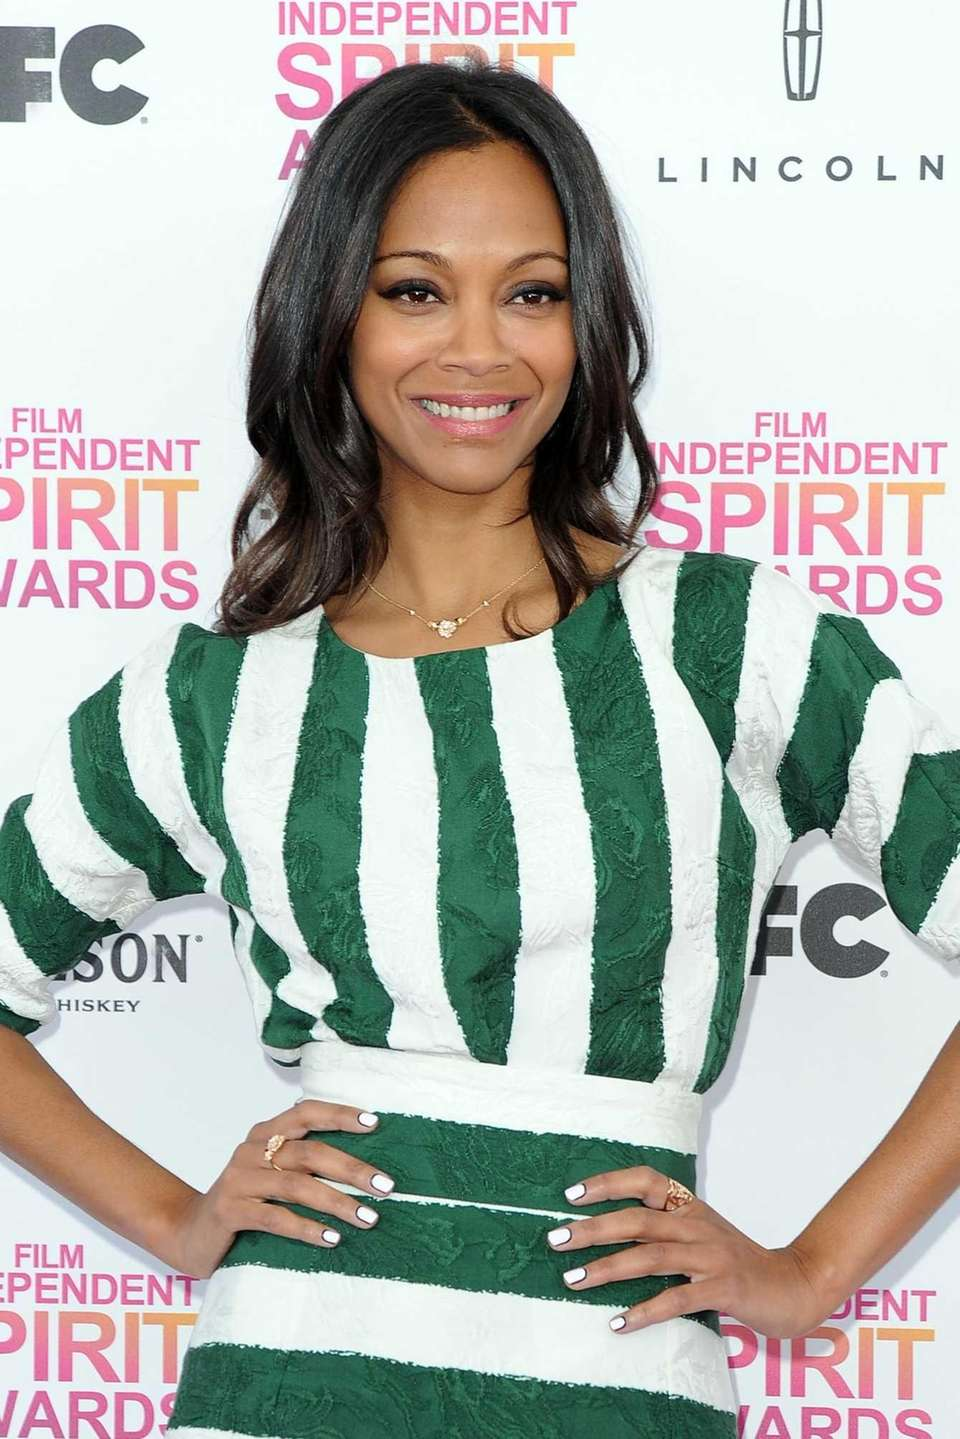 Zoe Saldana at the 2013 Film Independent Spirit